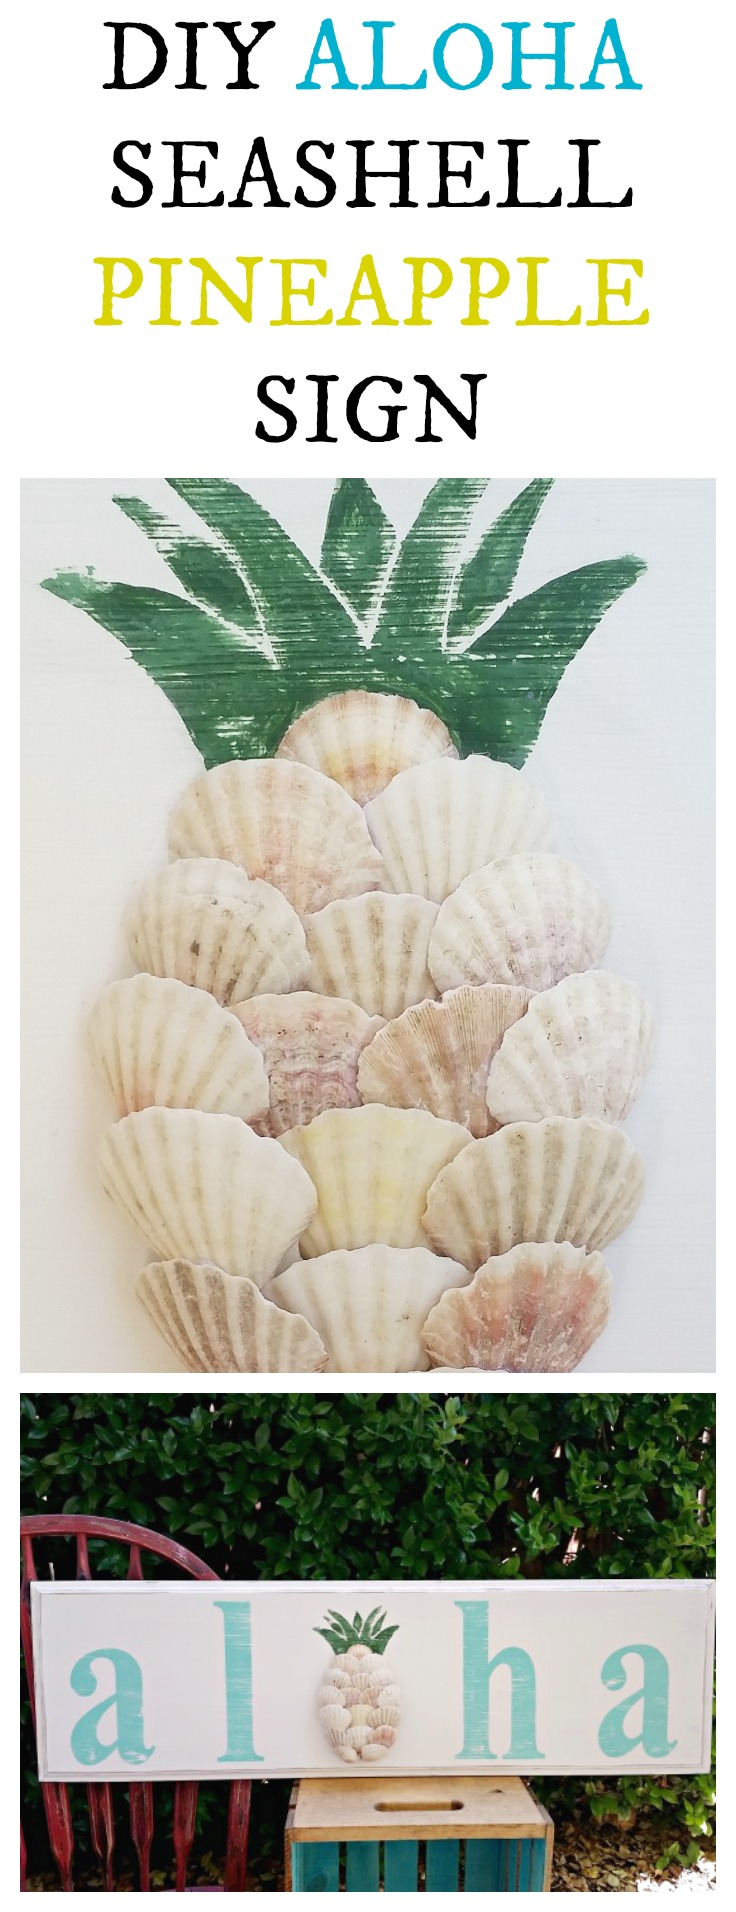 DIY Aloha Seashell Pineapple Sign